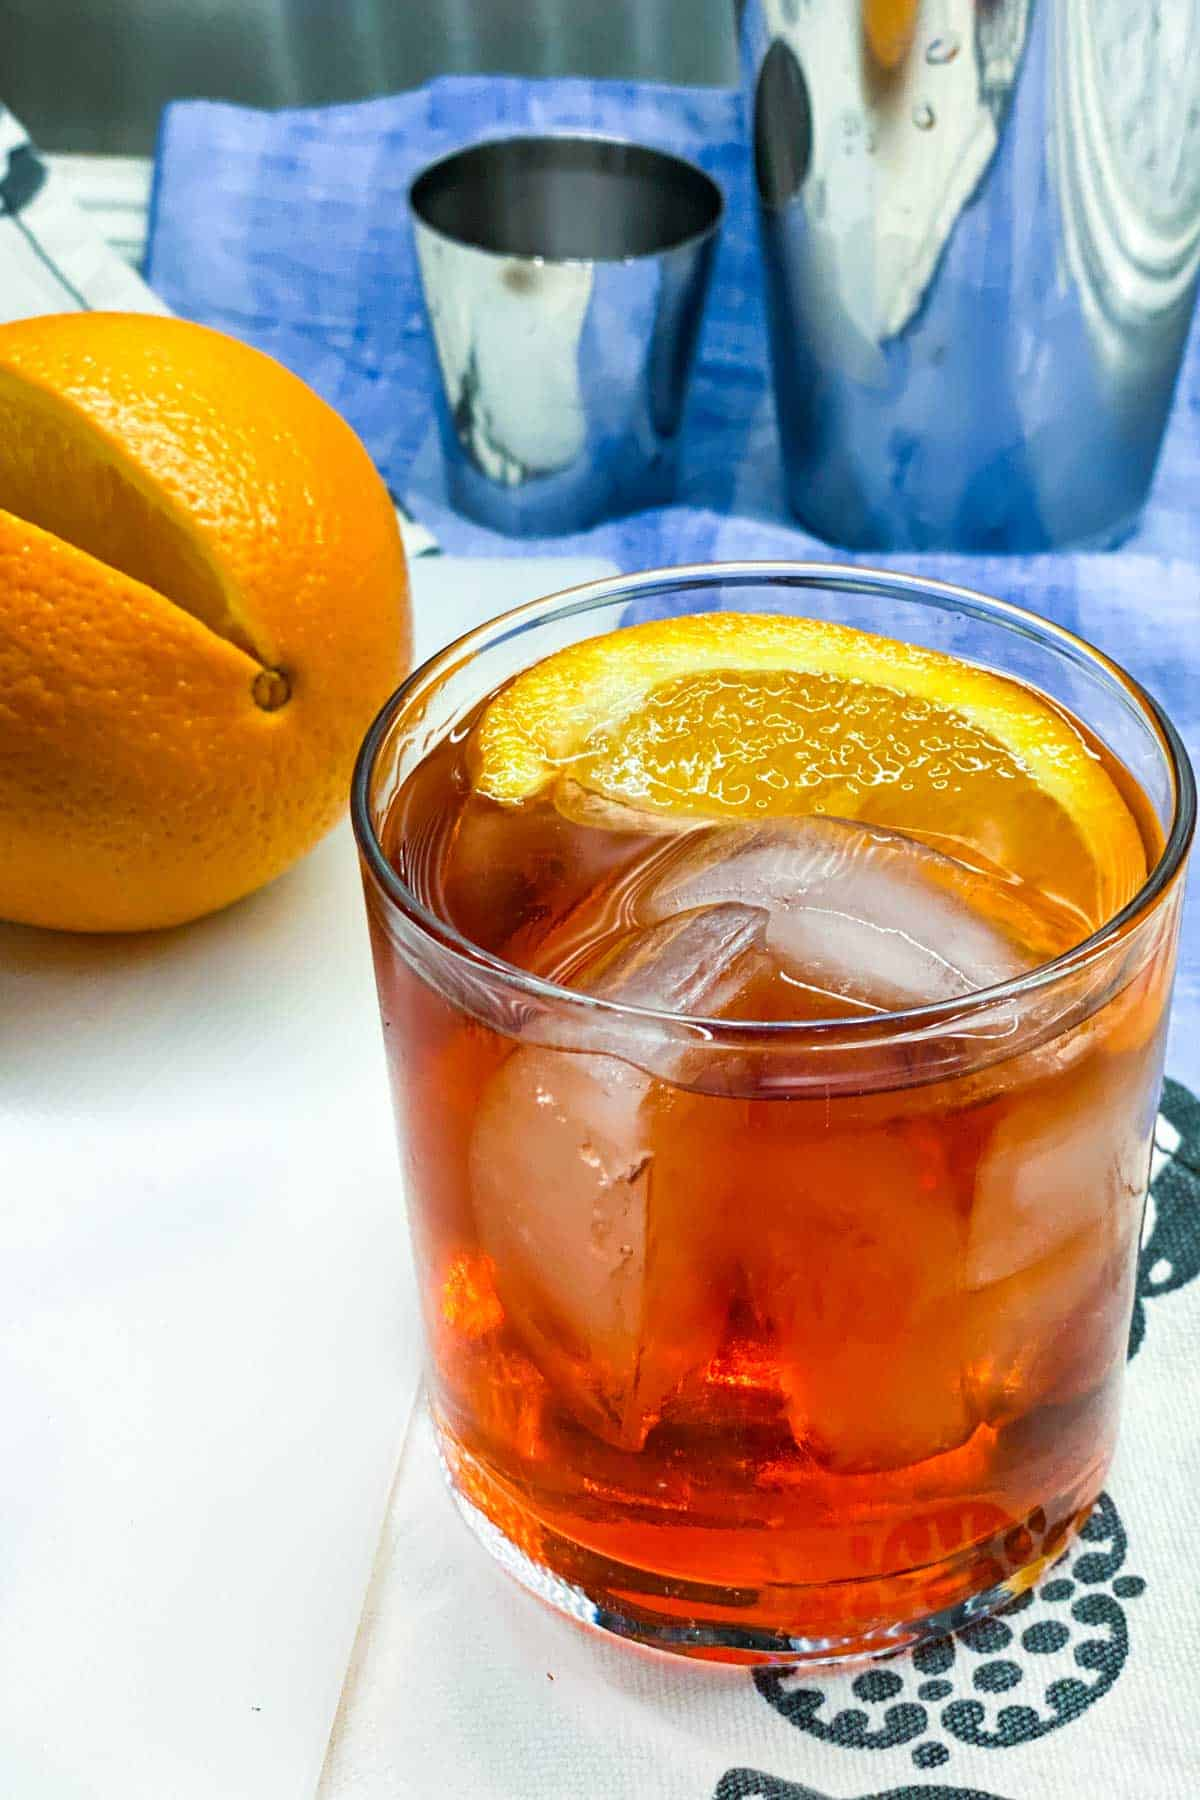 close up of a negroni cocktail in a glass with ice and an orange slice garnish, an orange and a cocktail shaker in the background, on a blue dish towel